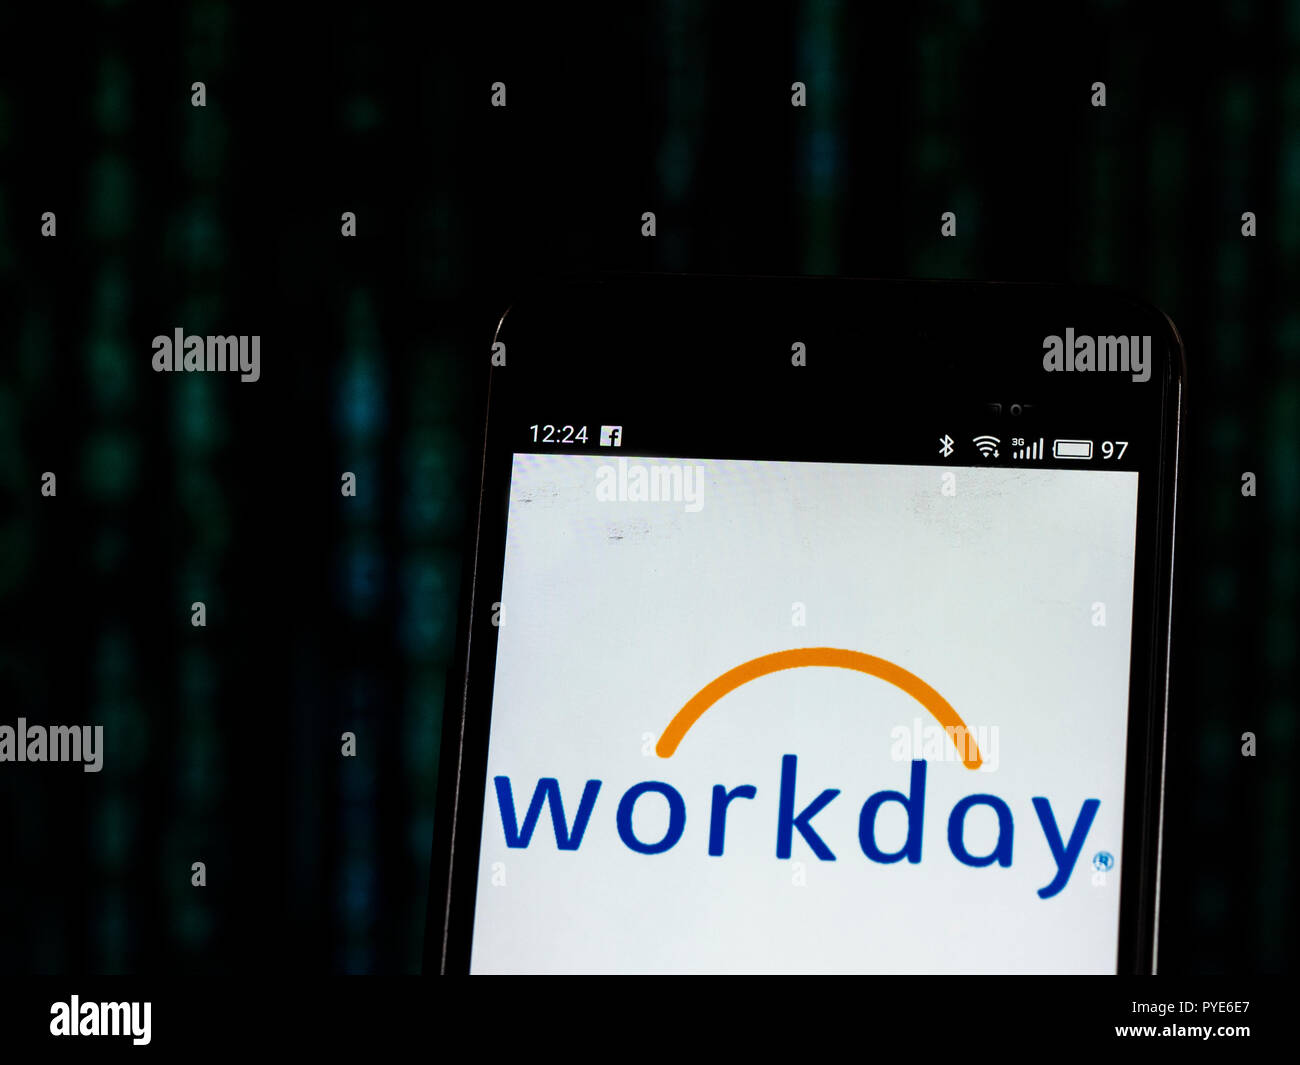 Workday, Inc  Software company logo seen displayed on smart